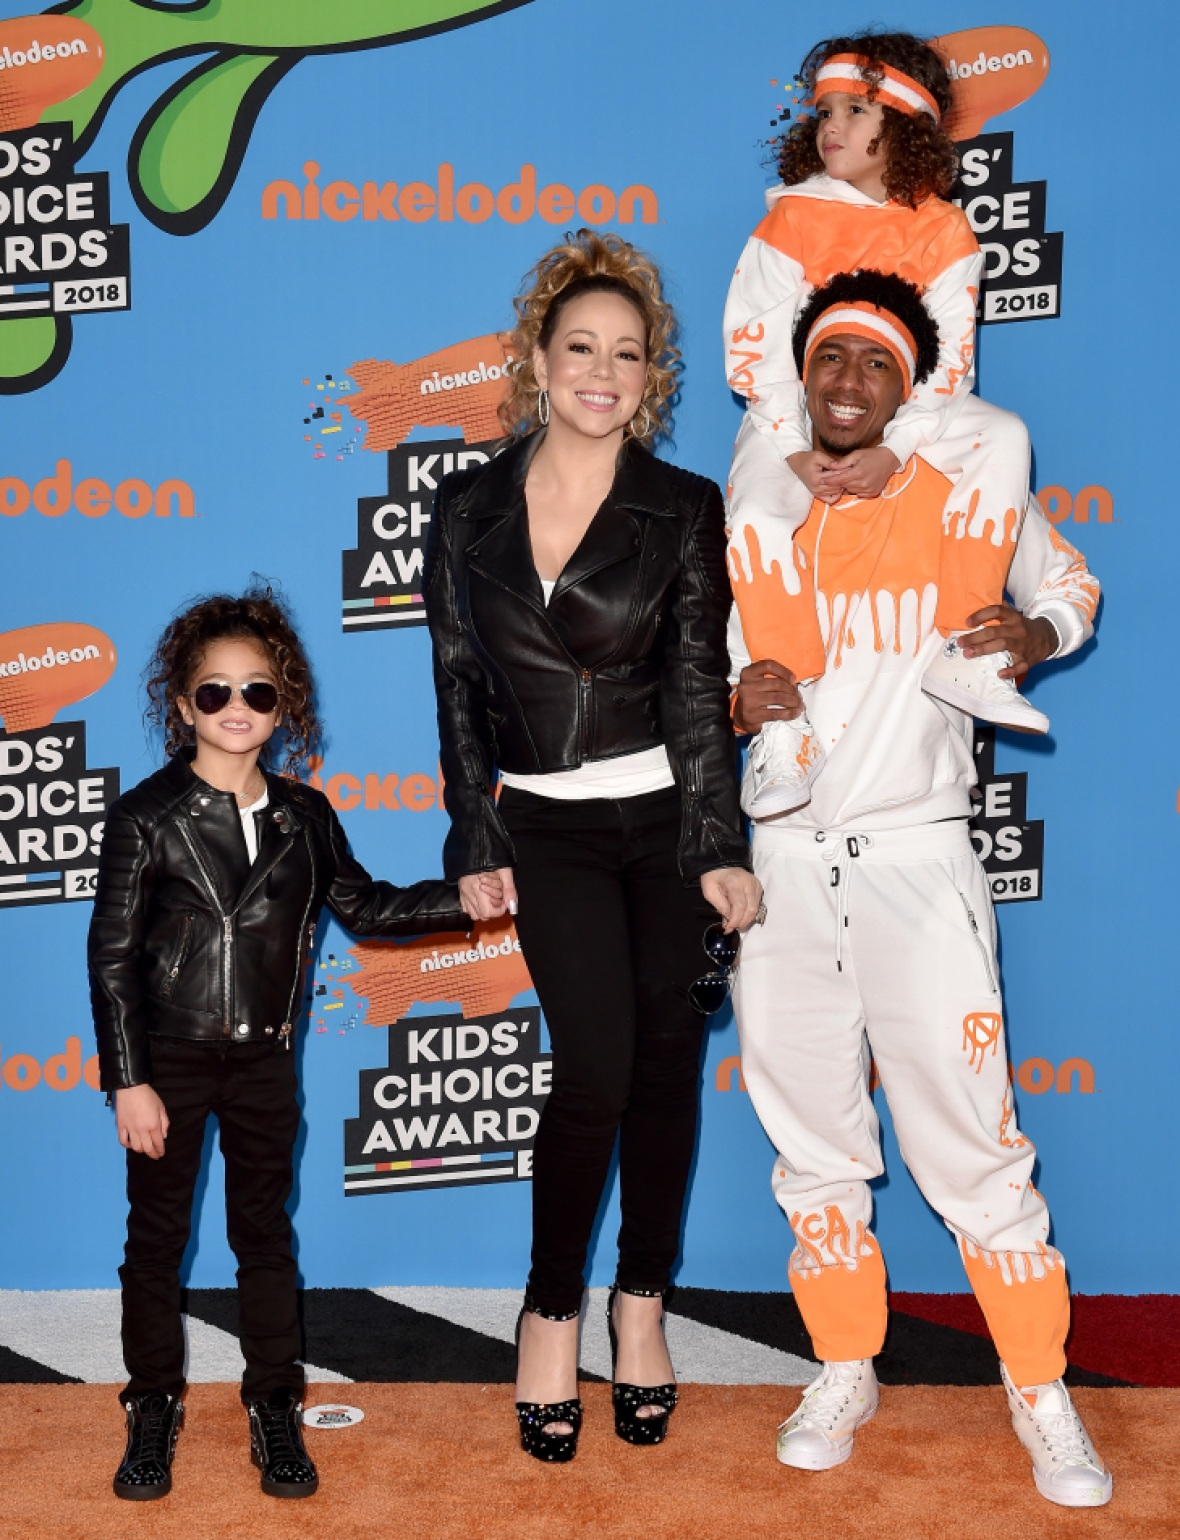 mariah carey, nick cannon family getty images